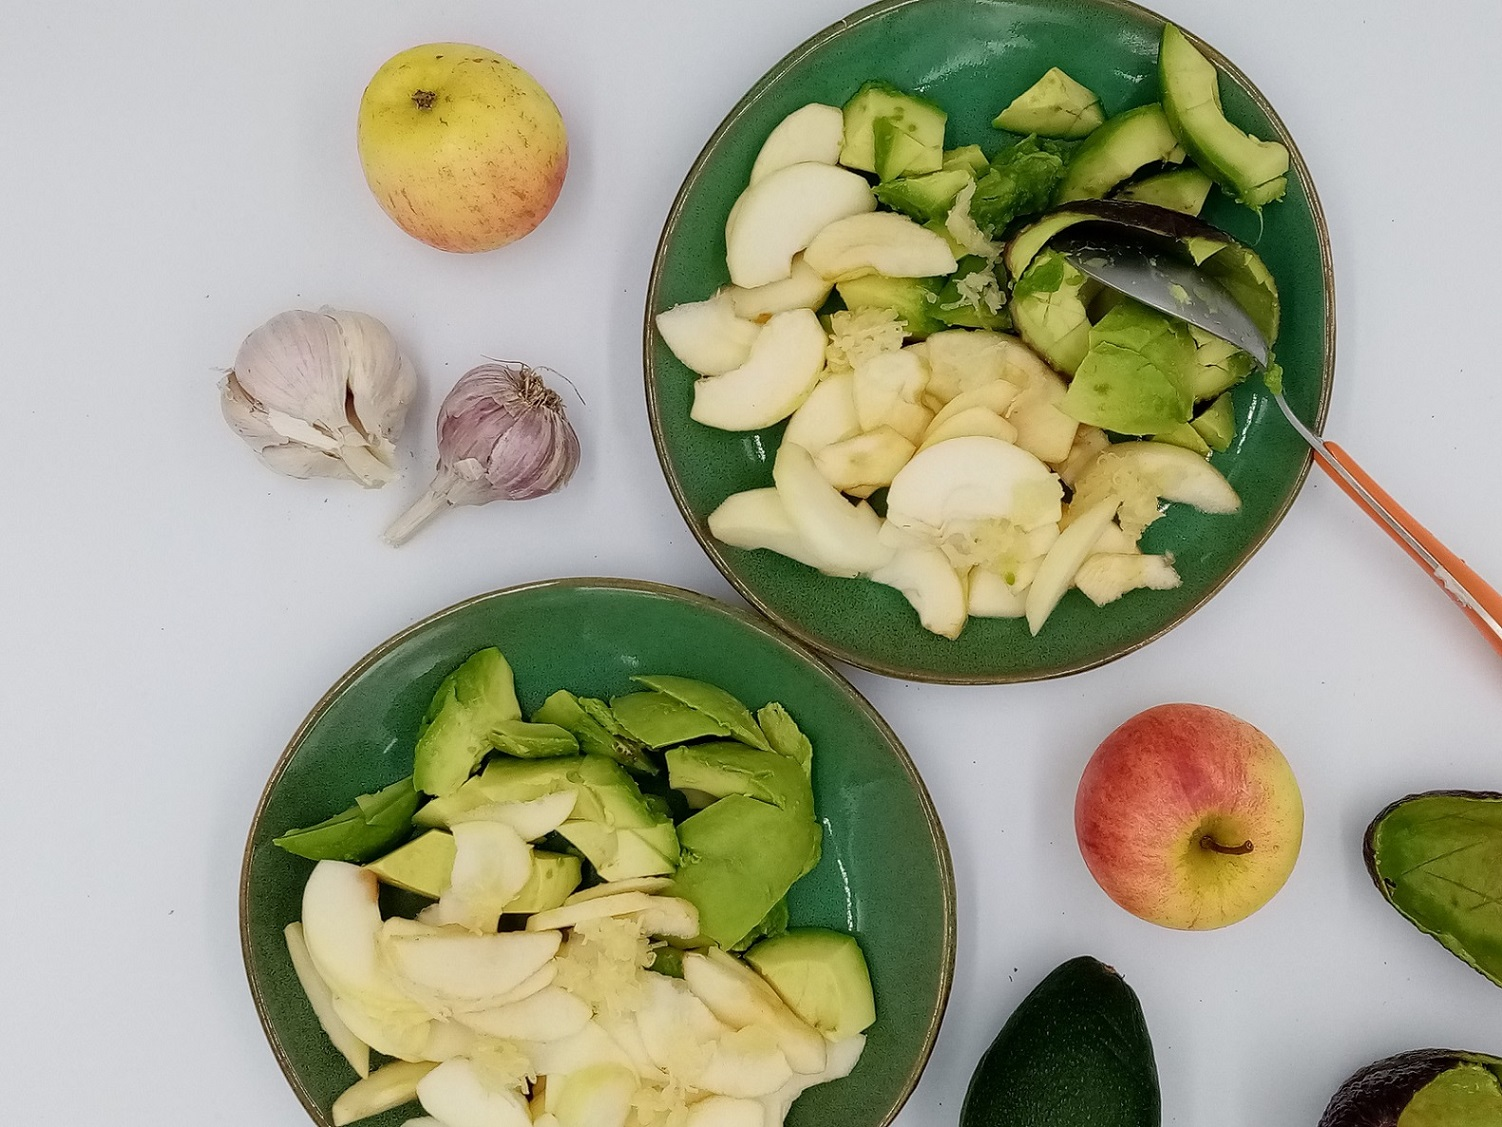 Vegan easy salad from my mother-in-law: just an apple, avocado and garlic. Made by Dr. Alisa Palatronis